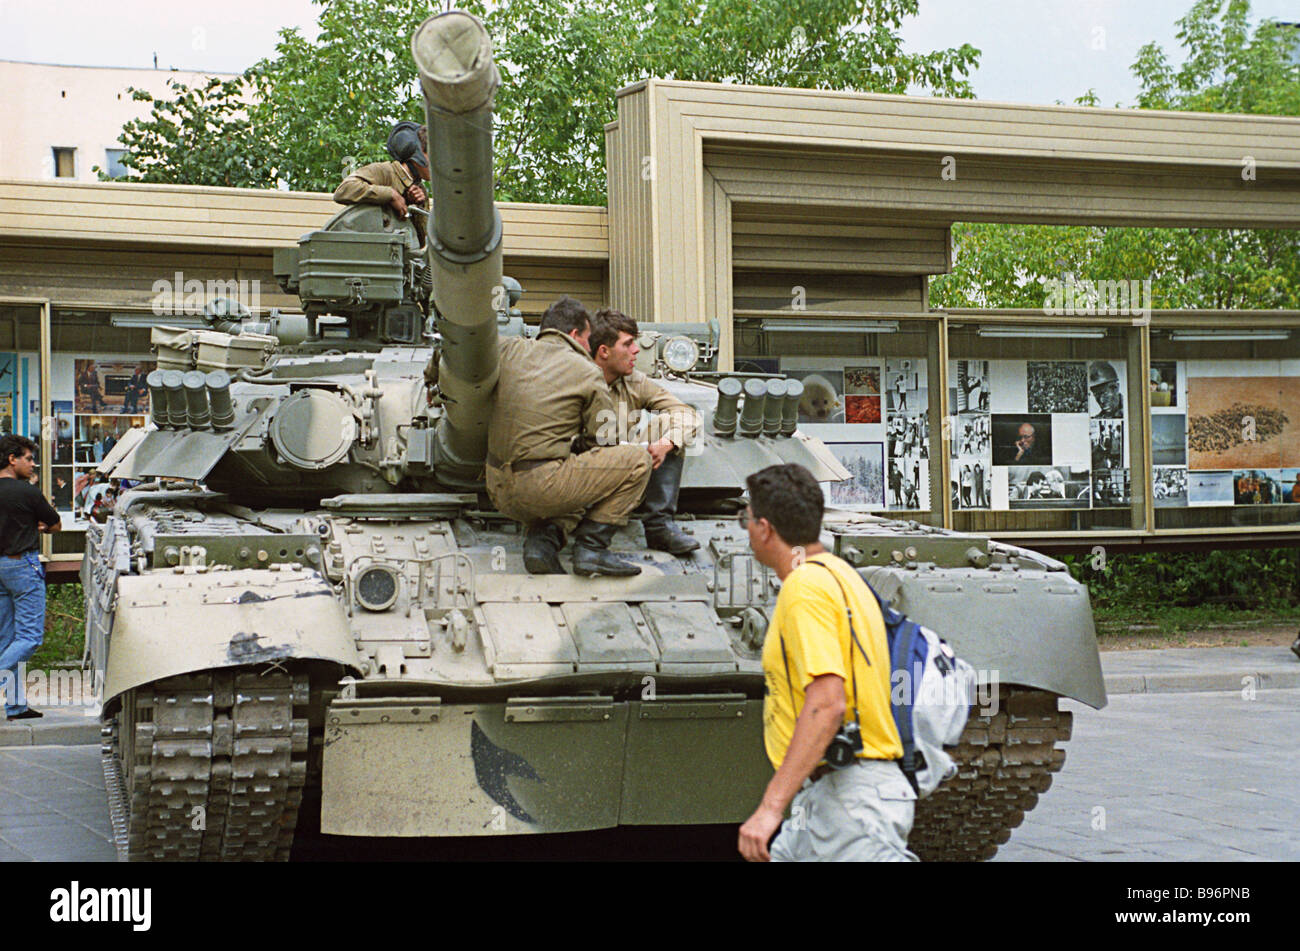 http://c7.alamy.com/comp/B96PNB/tank-in-moscow-streets-on-august-19-1991-on-that-day-a-group-of-top-B96PNB.jpg